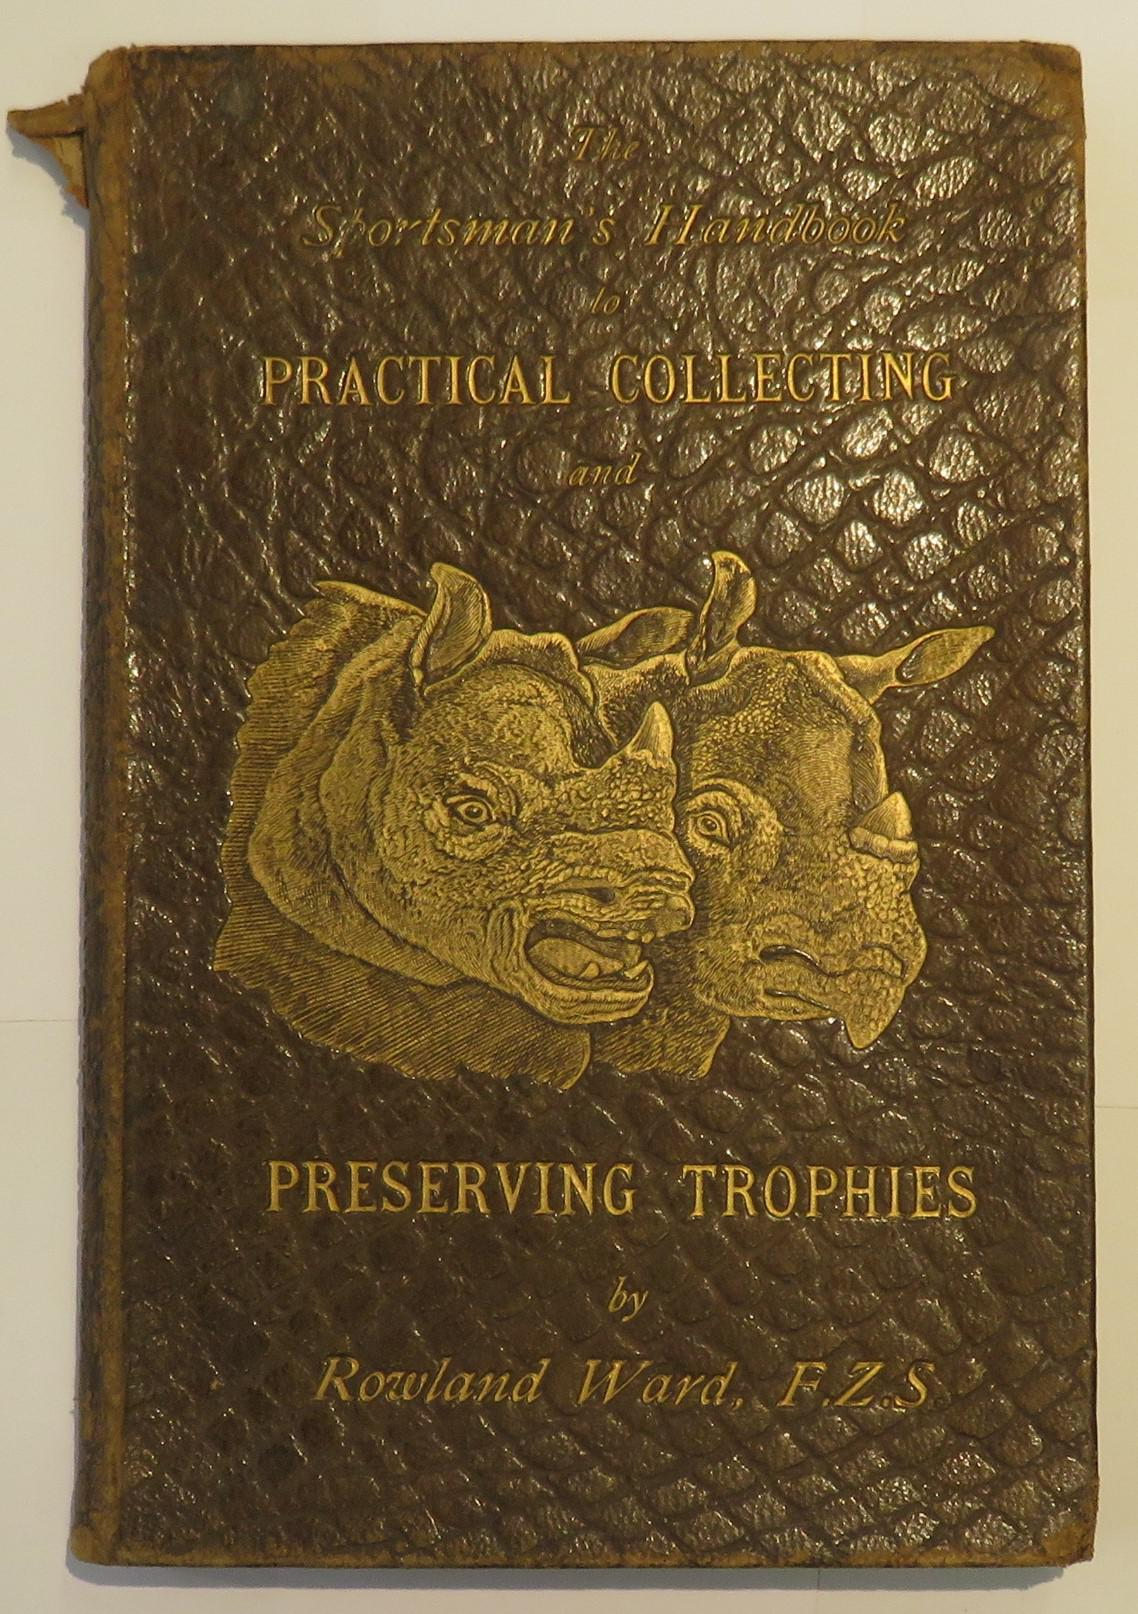 The Sportsman's Handbook to Practical Collecting and Preserving Trophies